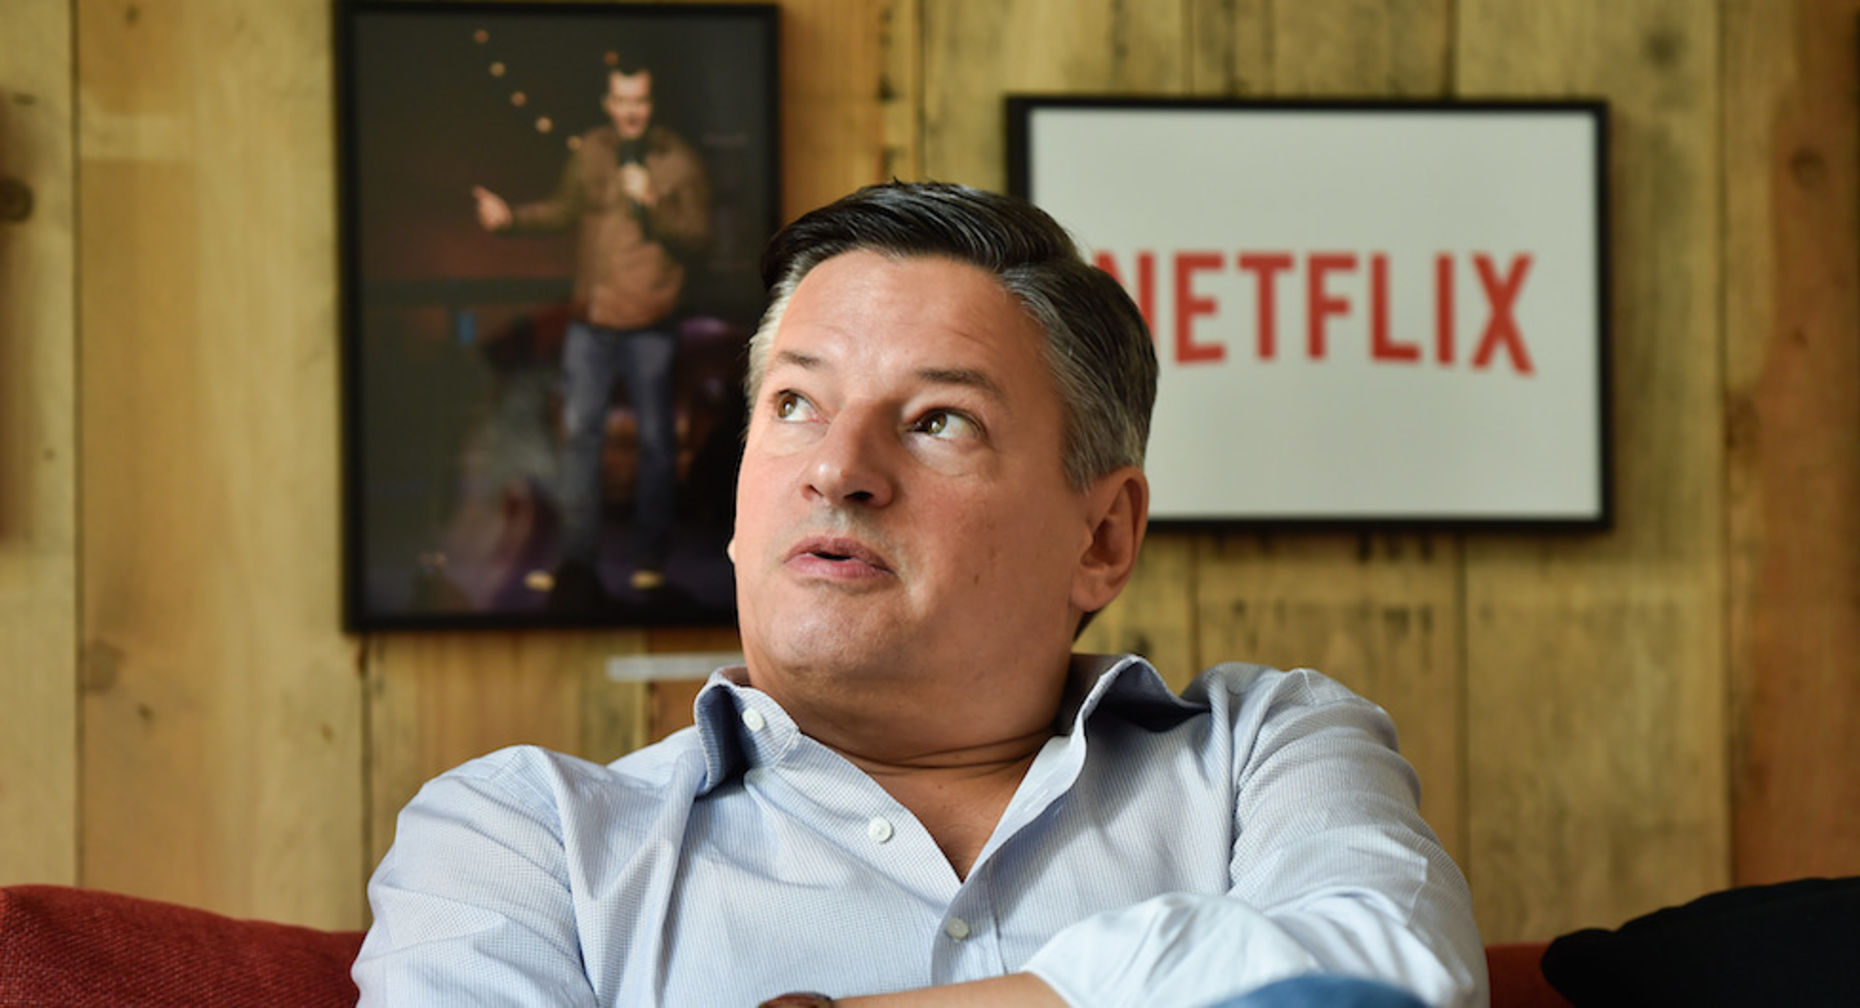 Netflix content chief Ted Sarandos. Photo by Associated Press.